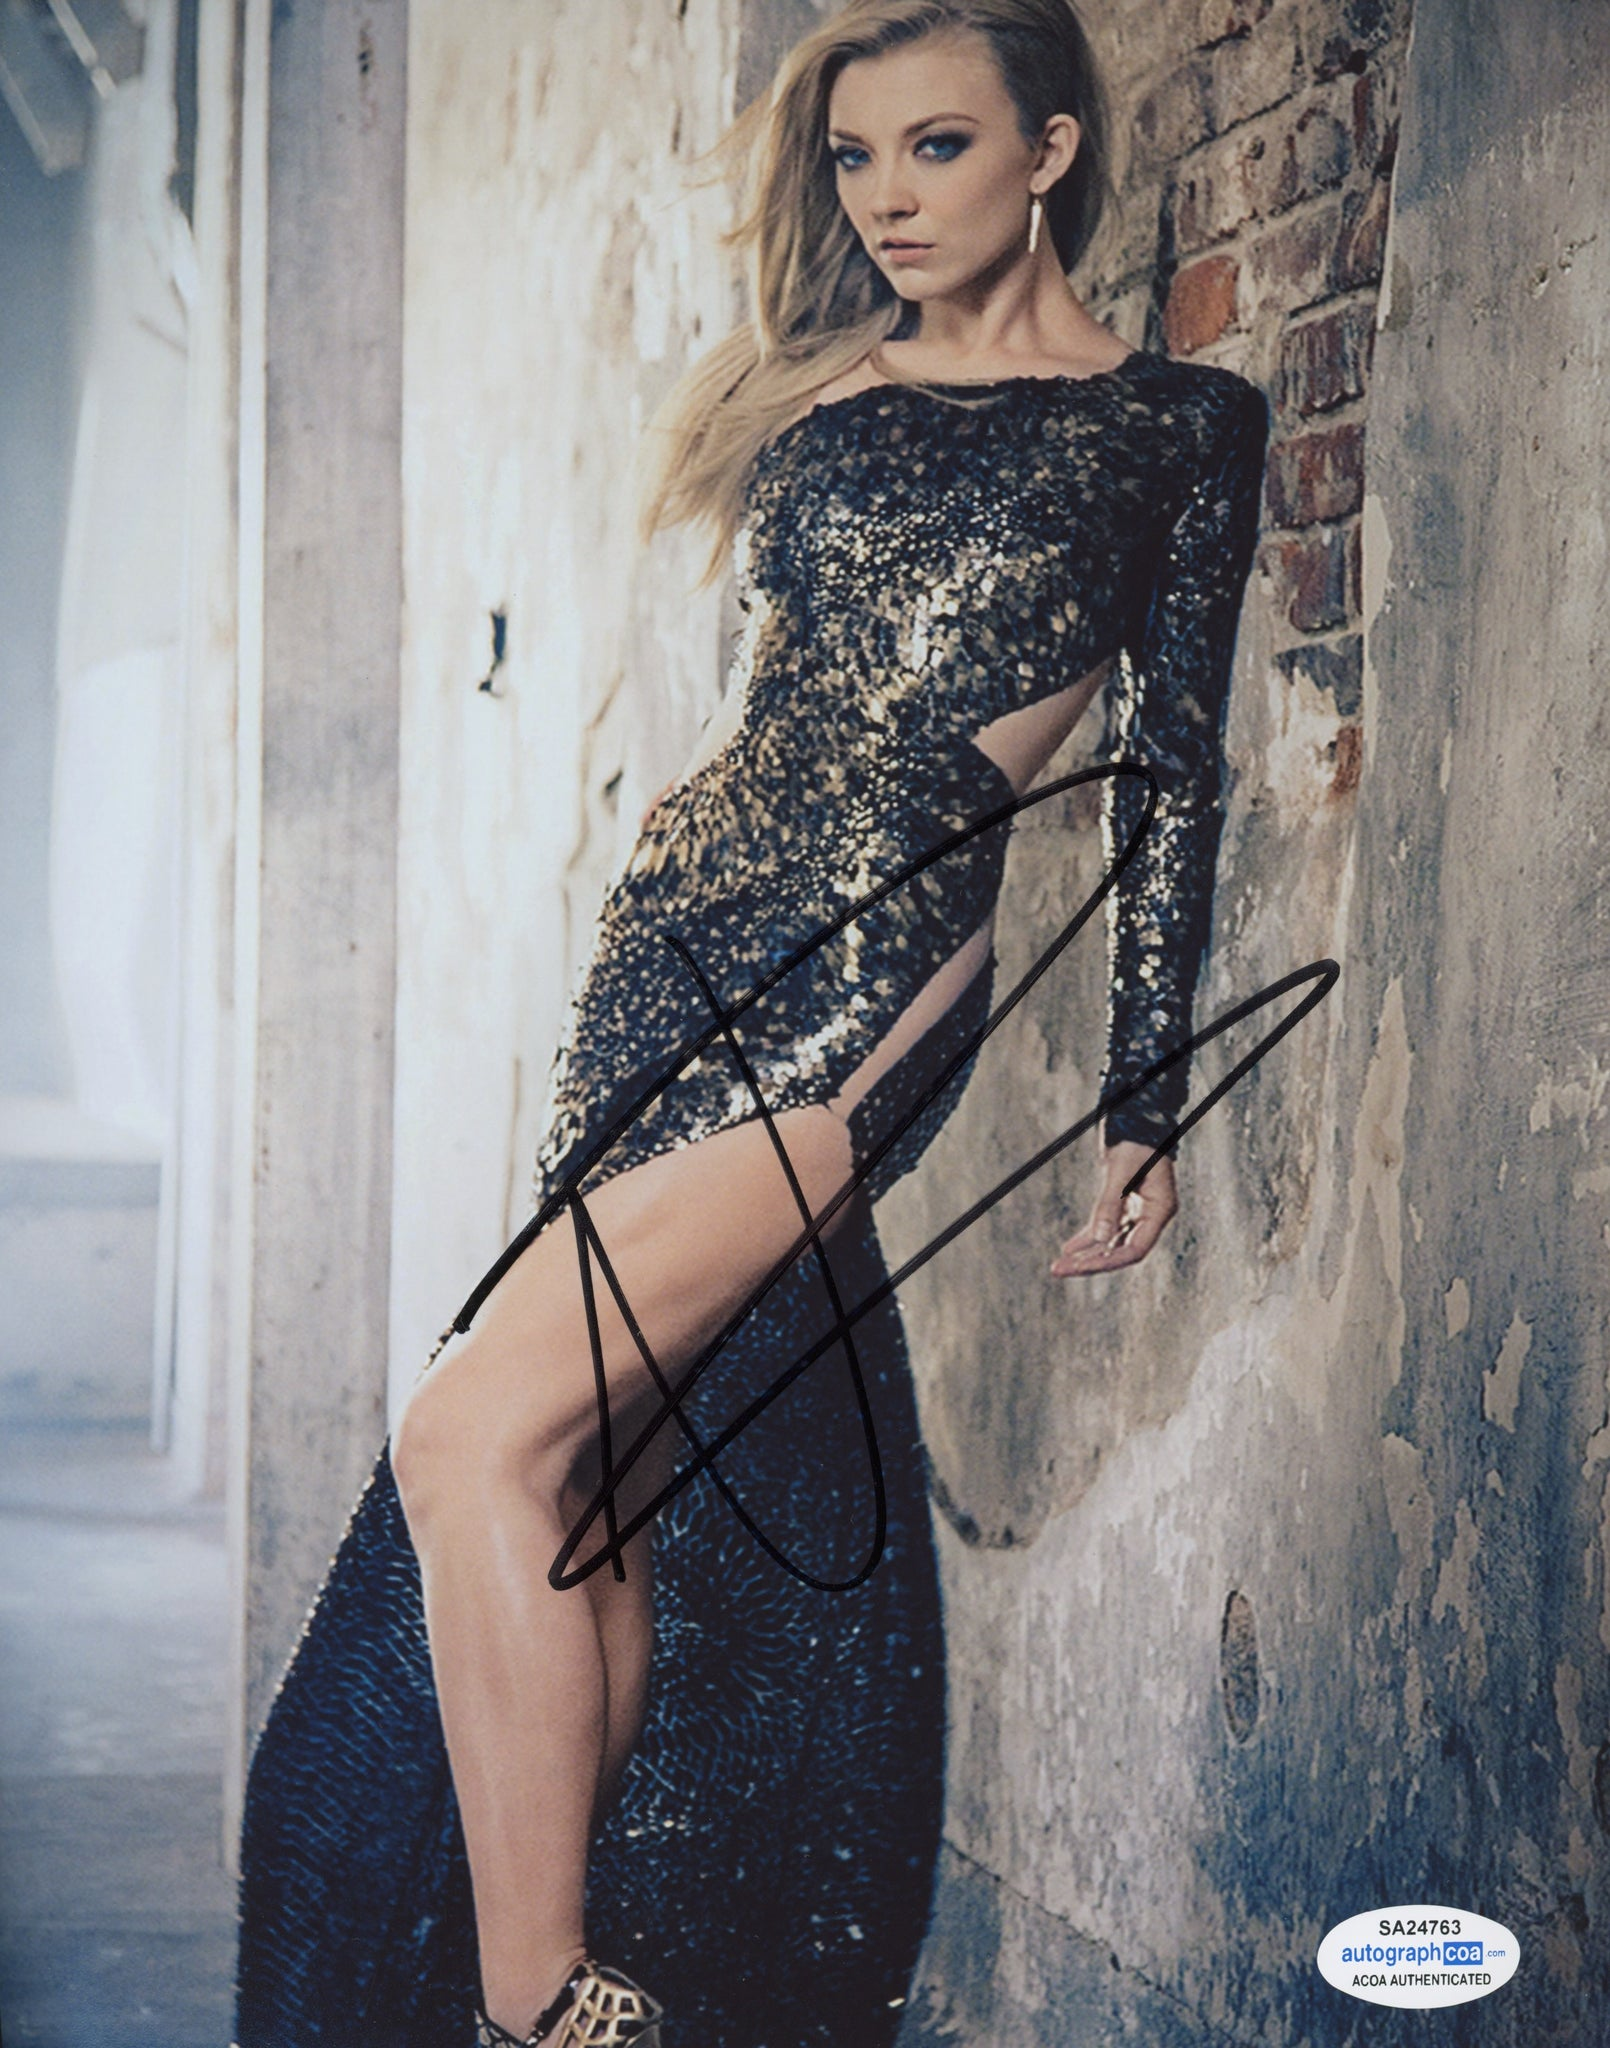 Natalie Dormer Sexy Signed Autograph 8x10 Photo #18 - Outlaw Hobbies Authentic Autographs